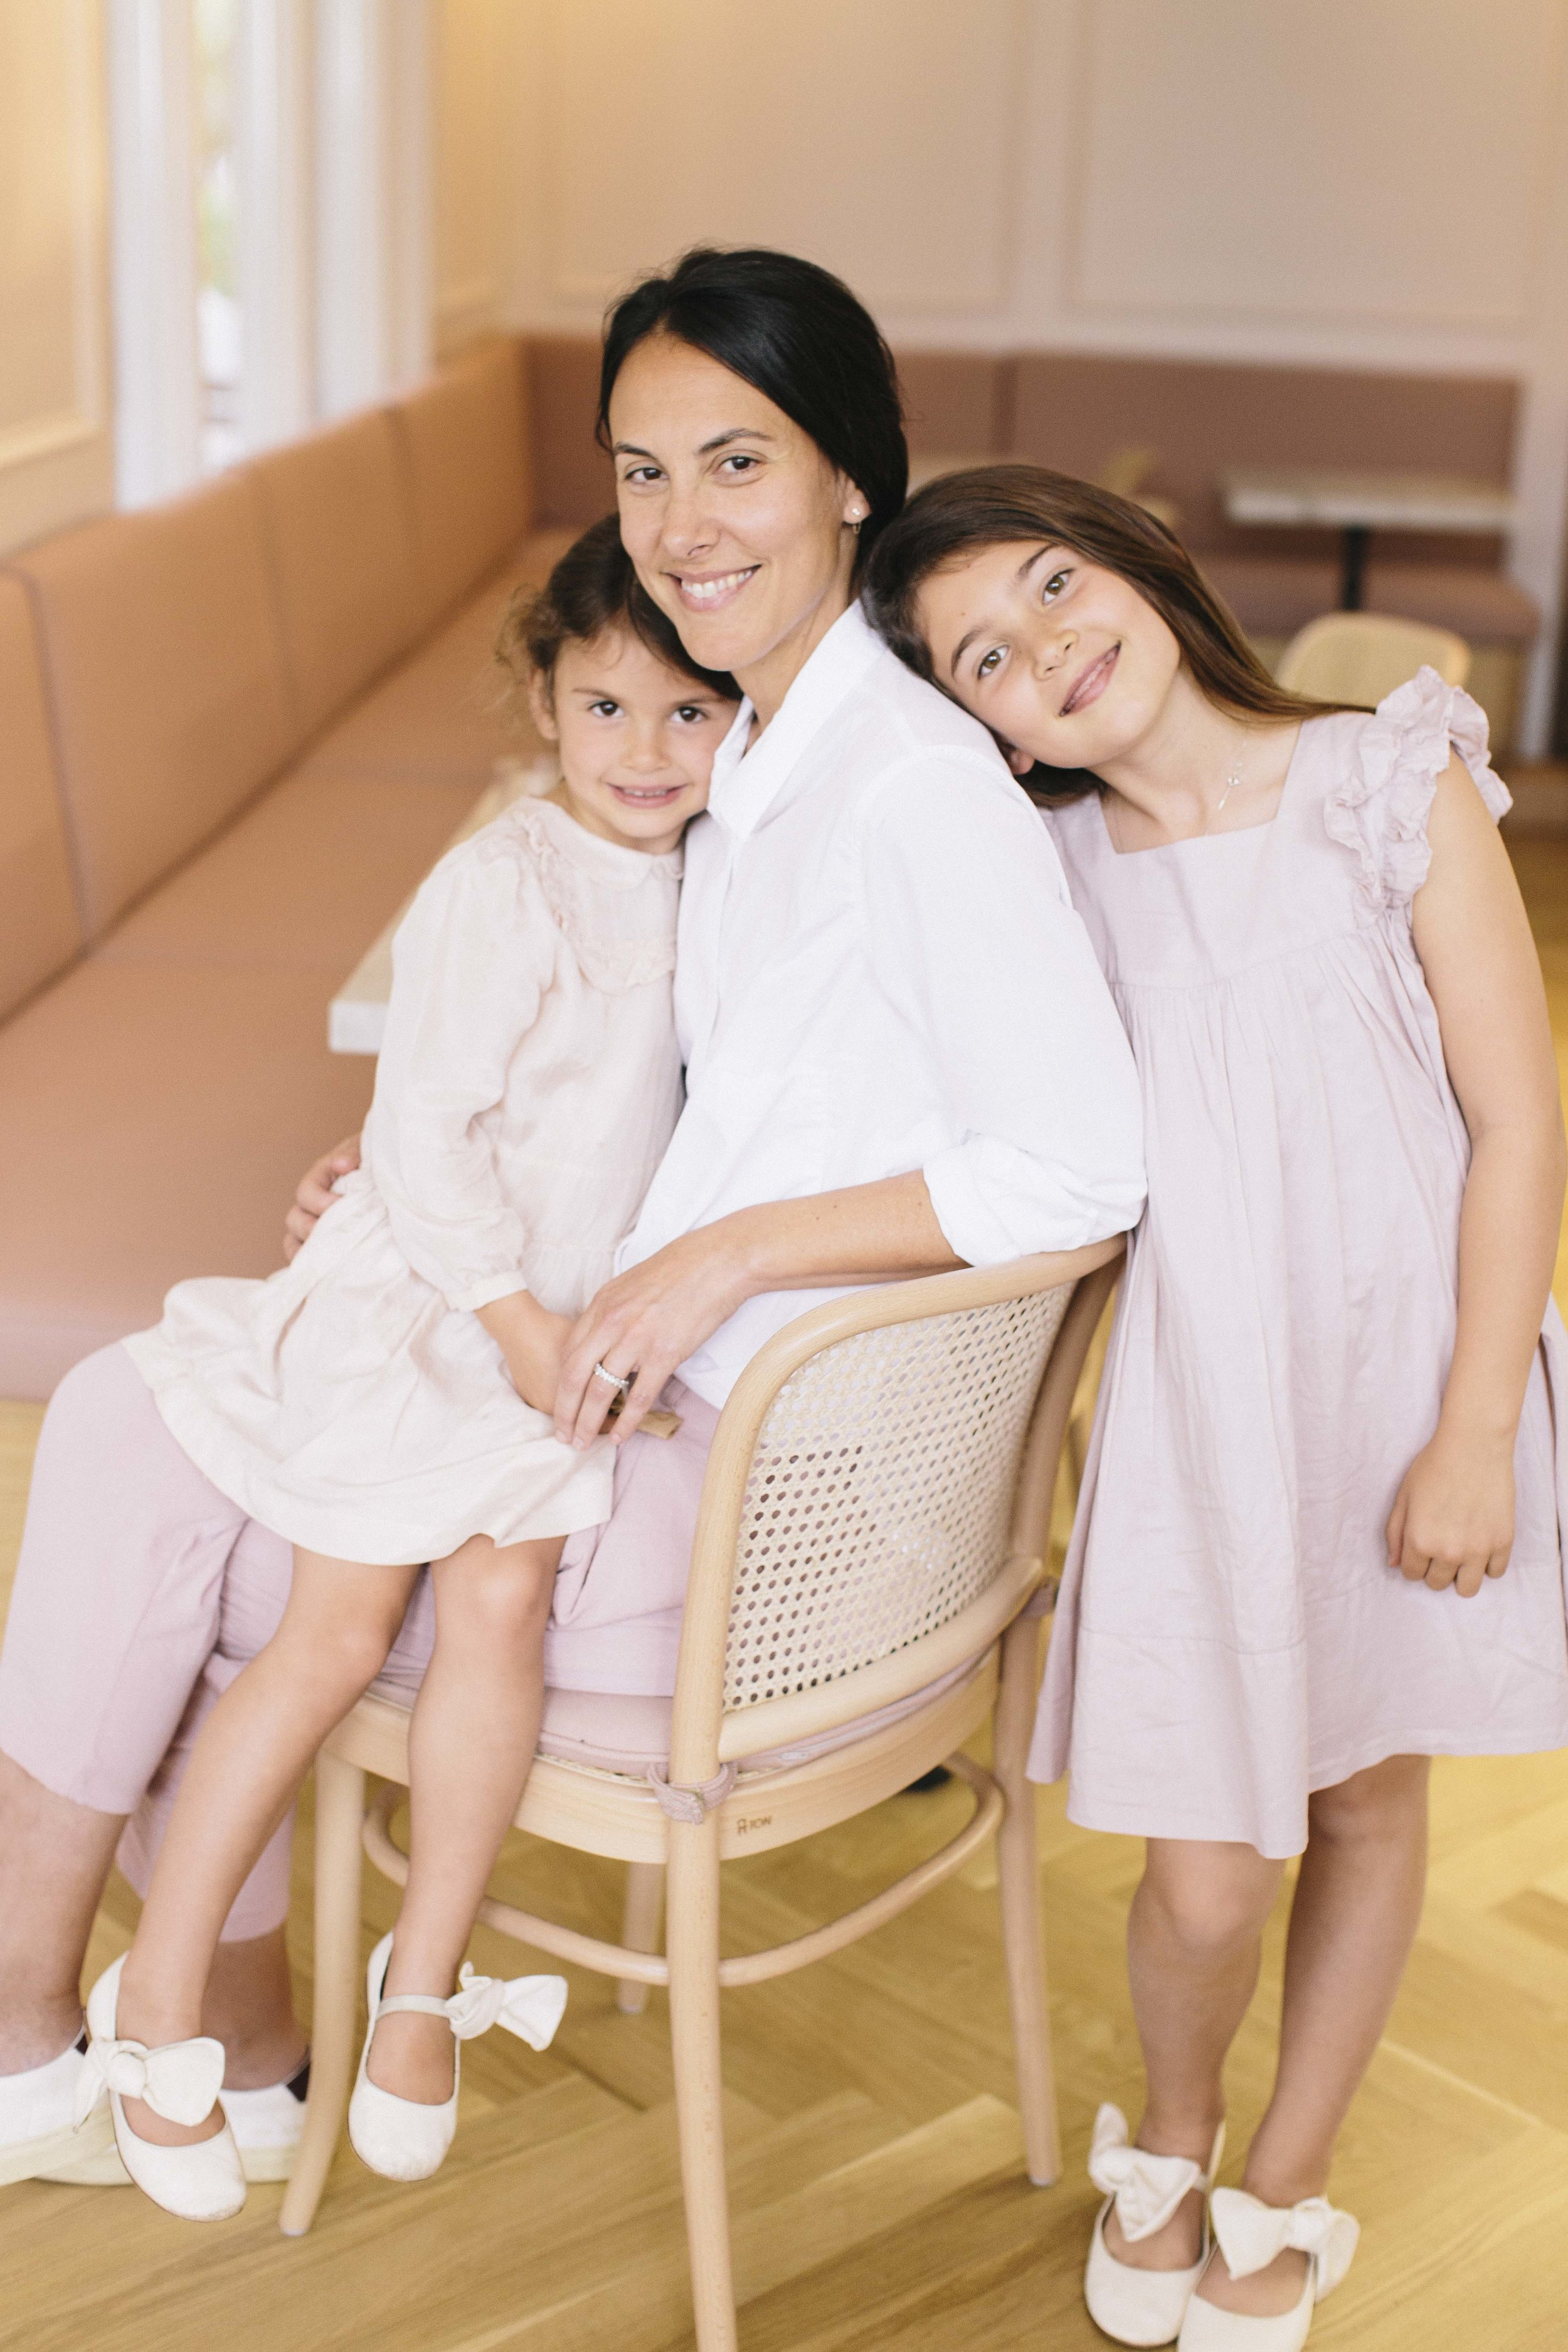 Elizabeth with daughters, Paloma and Celeste.